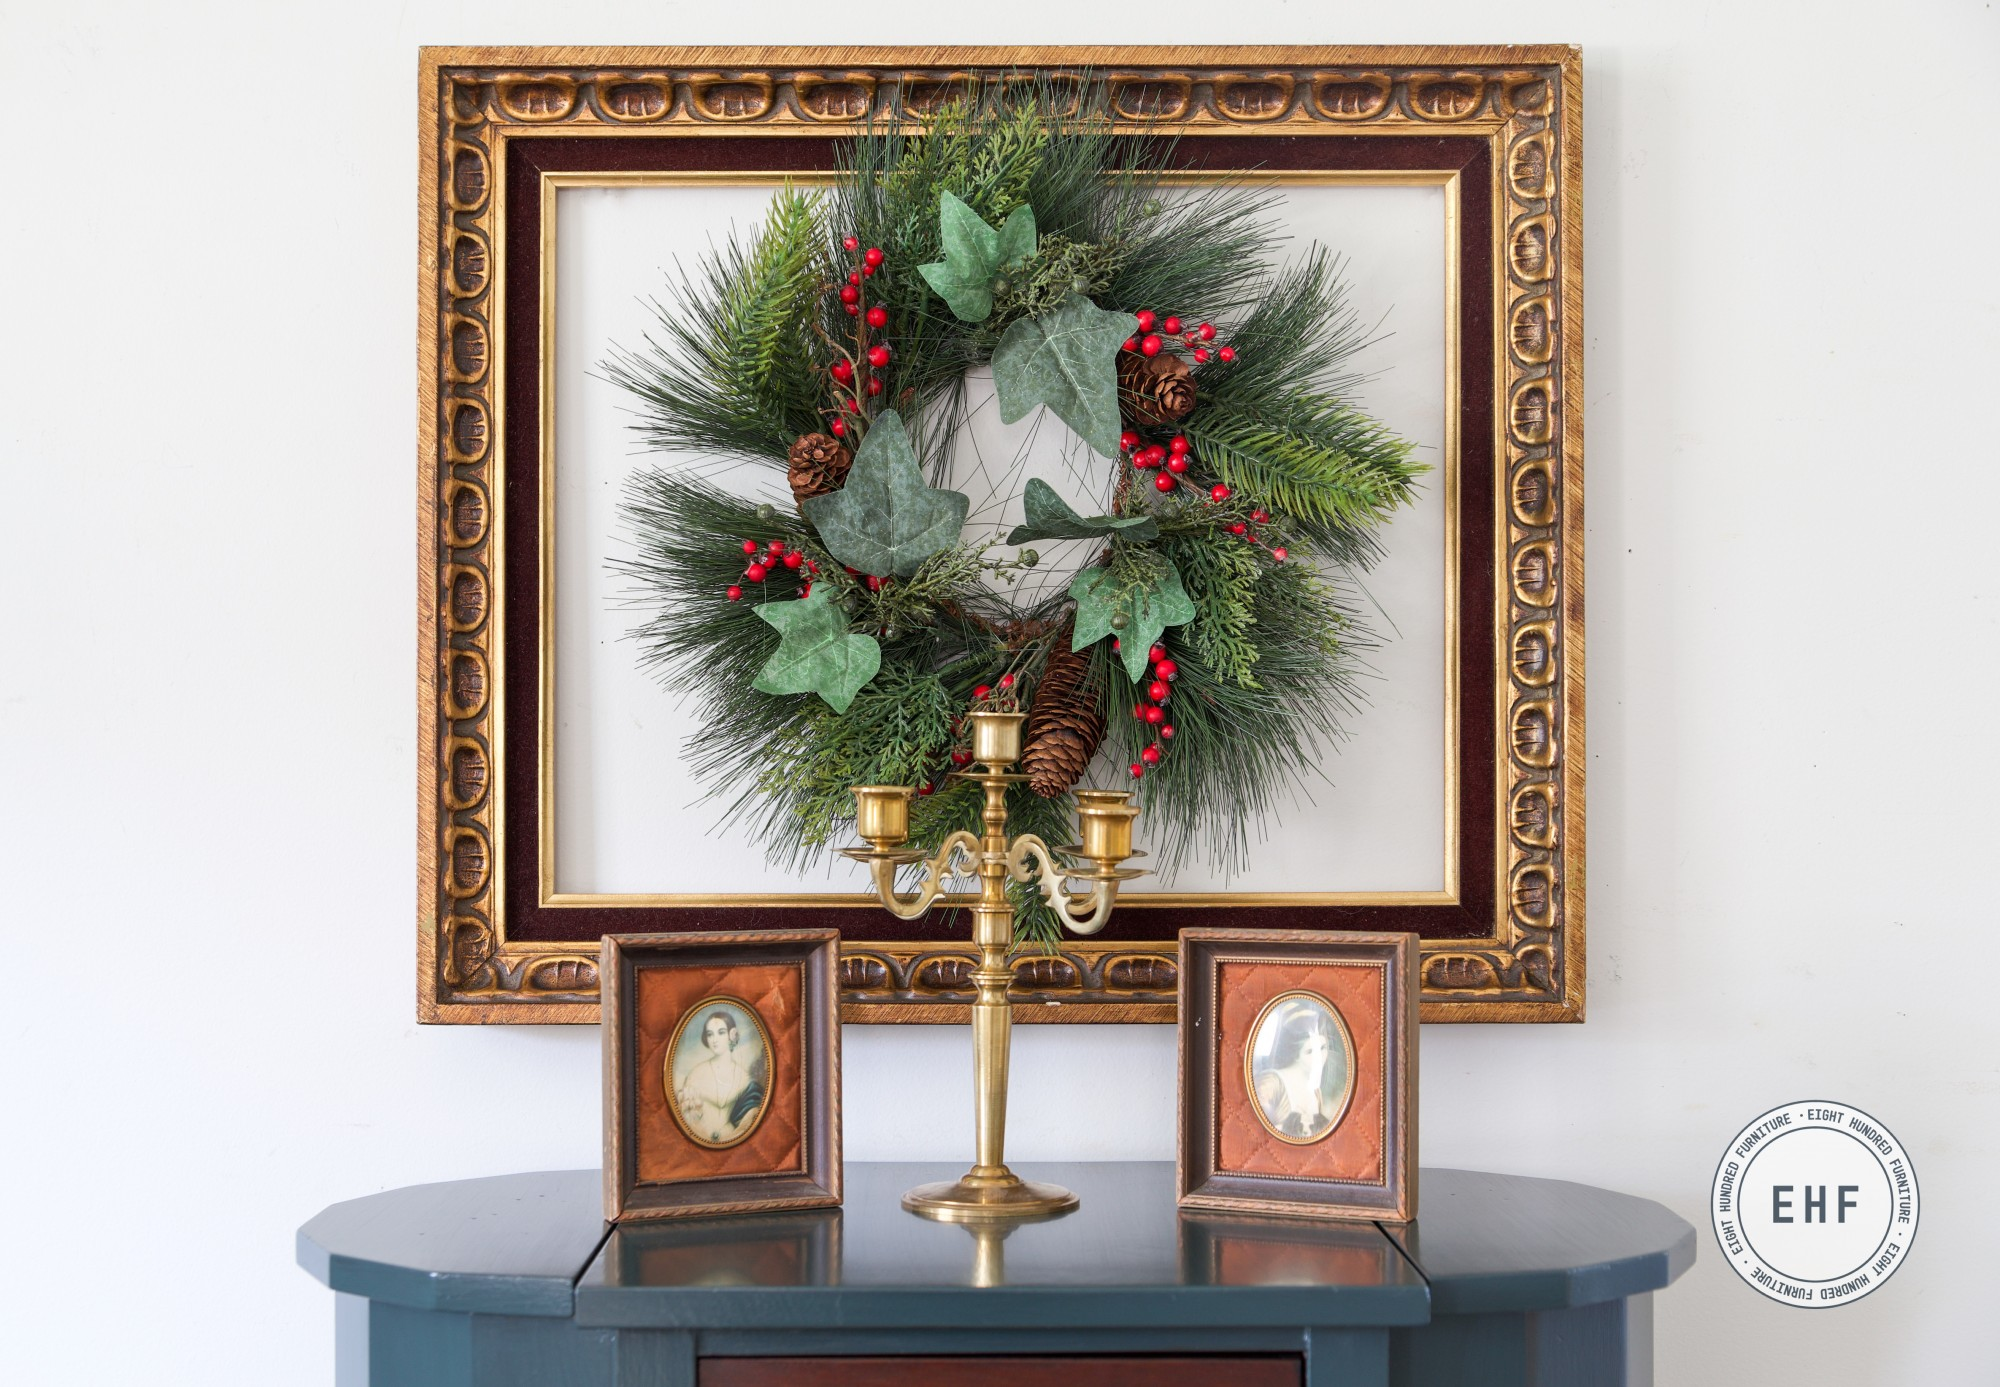 Christmas wreath in gold frame with brass candelabra